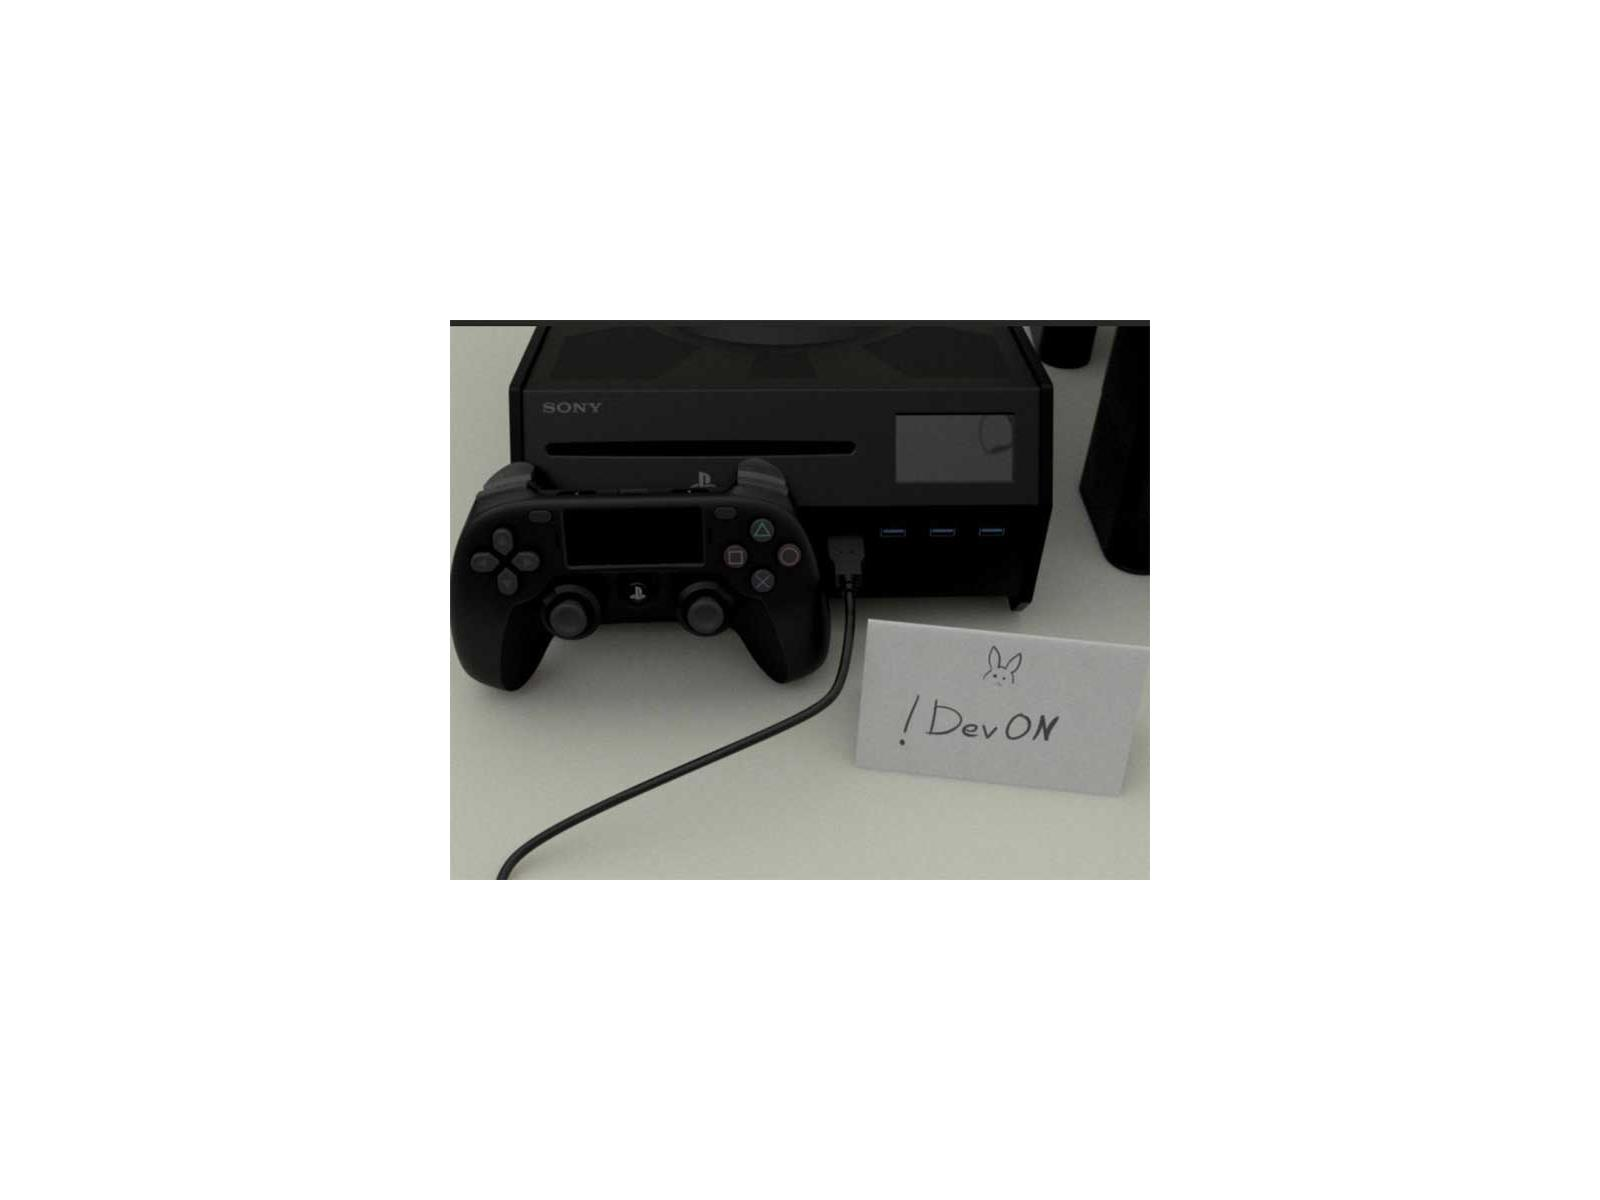 Alleged PlayStation 5 Devkit With DualShock Controller